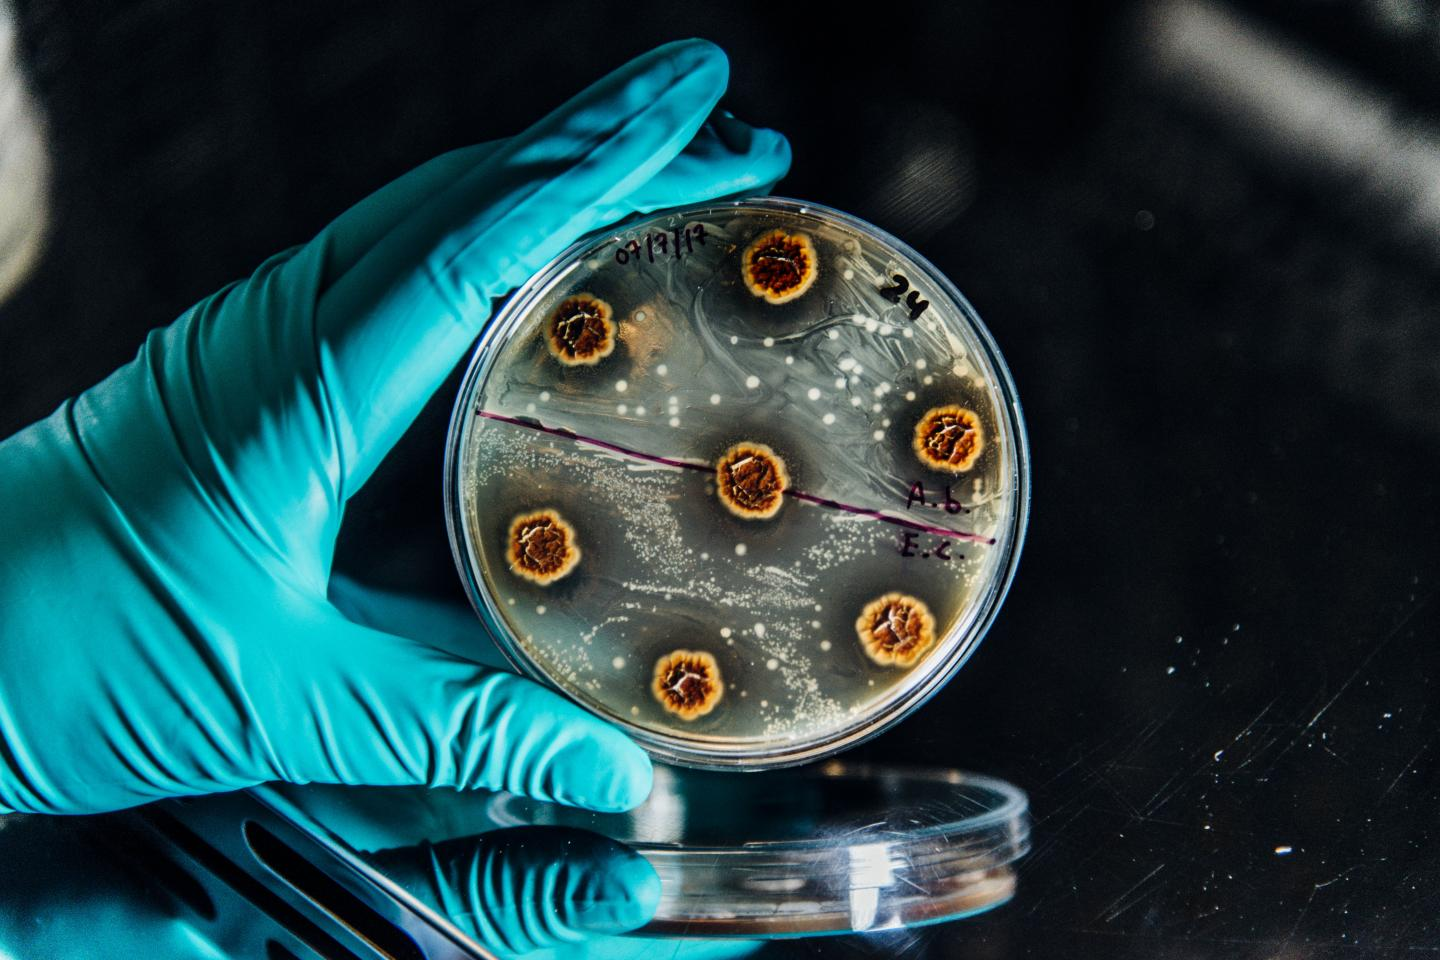 Bacteria in a Plate